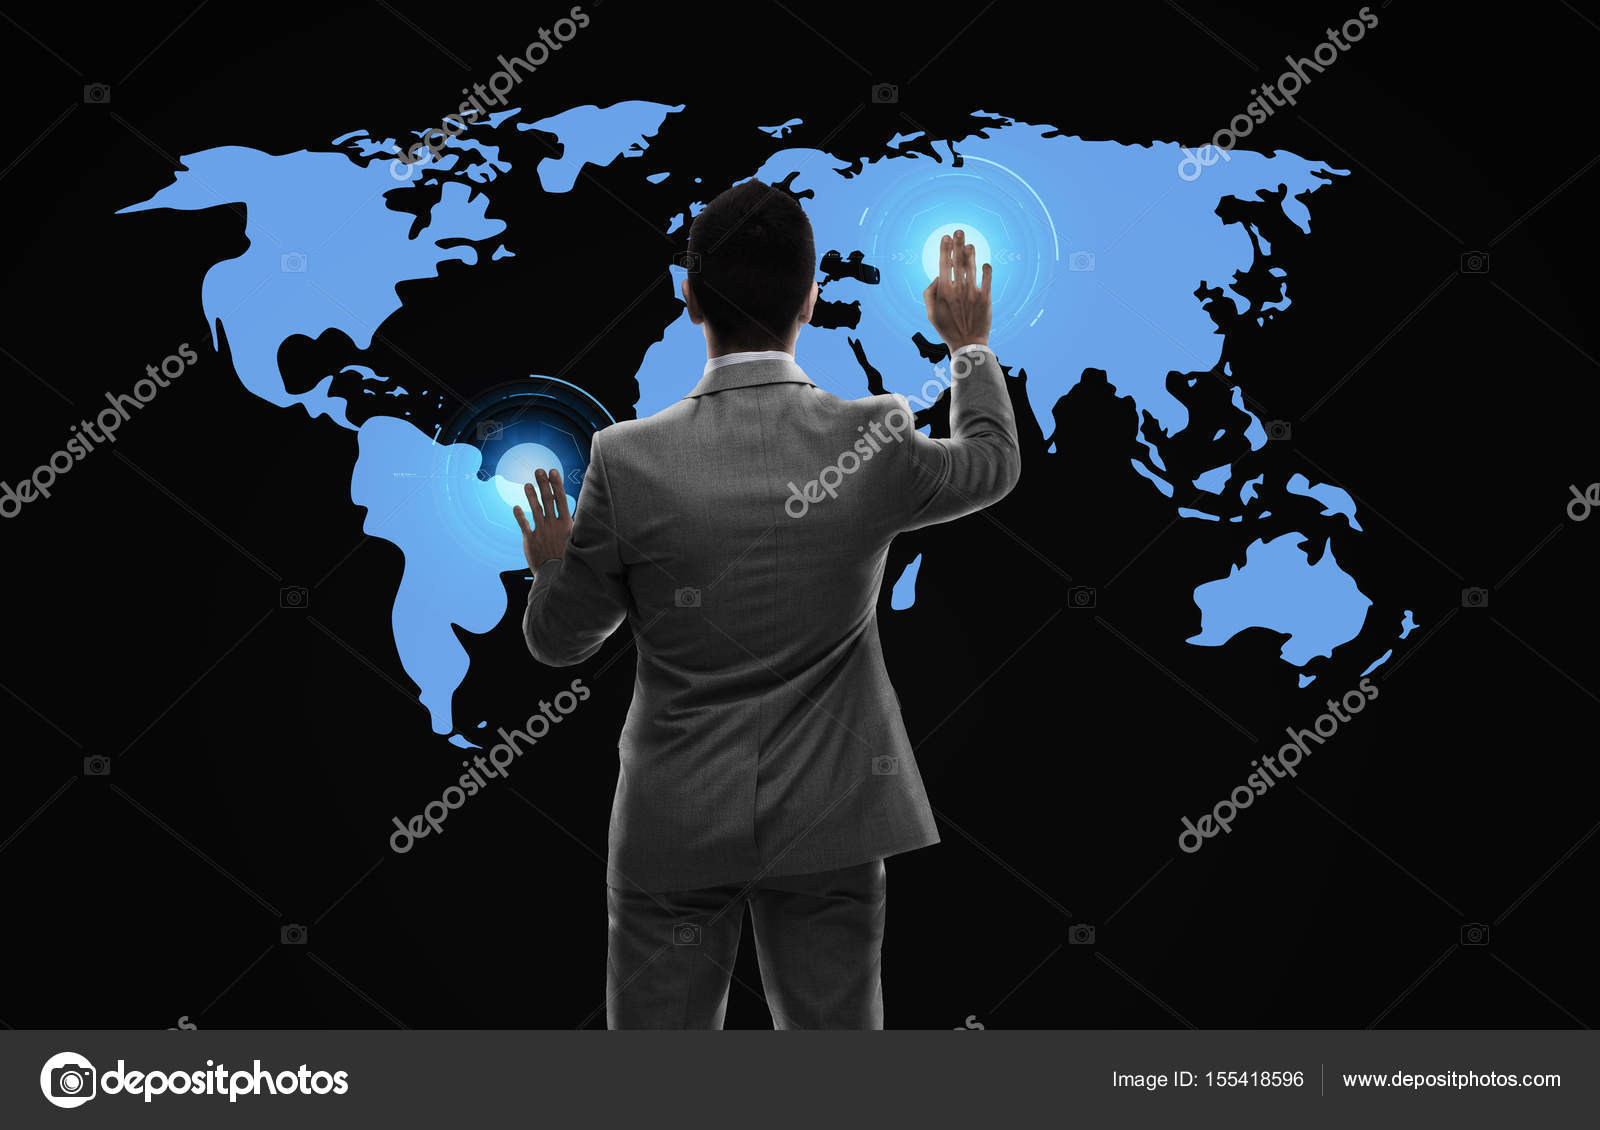 Businessman working with virtual world map stock photo business people and technology concept businessman working with virtual world map from back over black background photo by sydaproductions gumiabroncs Choice Image